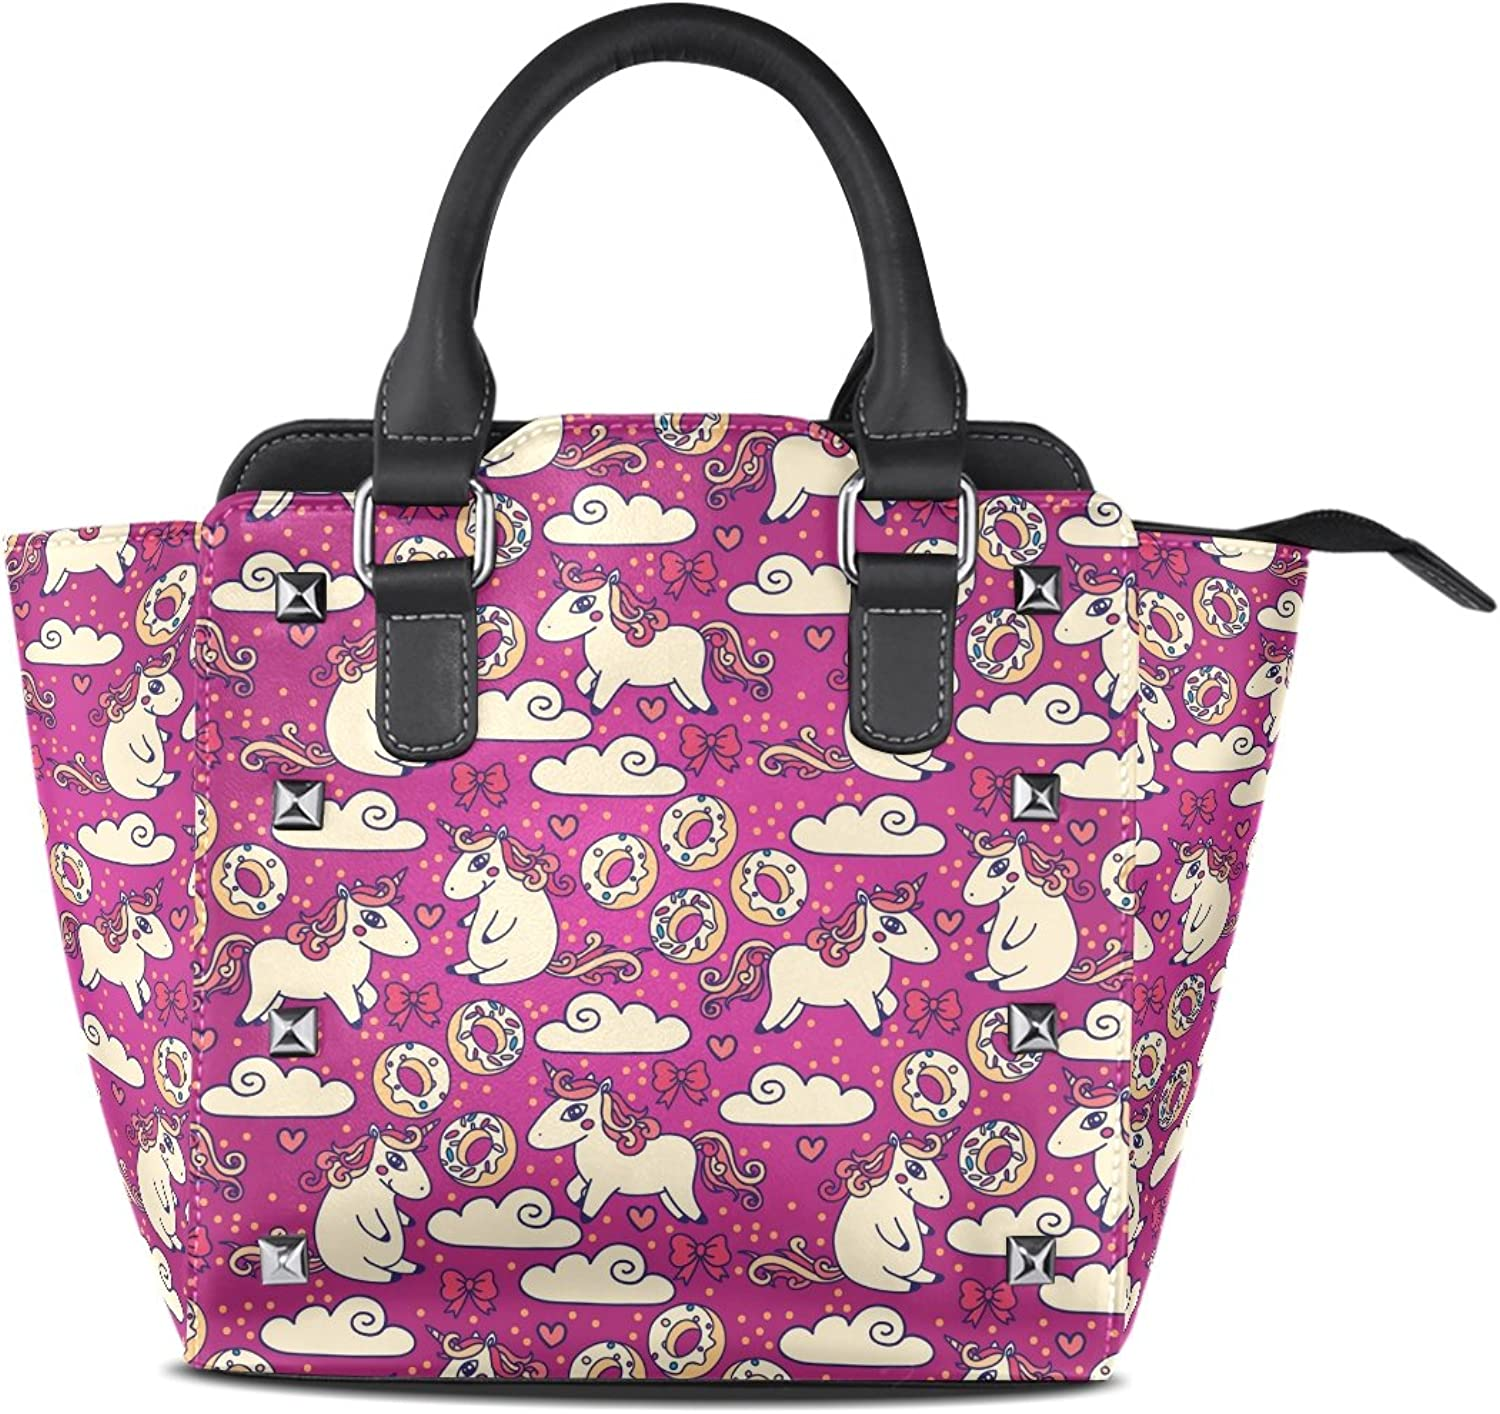 Sunlome Cute Doodle Unicorns and Sweets Print Handbags Women's PU Leather Top-Handle Shoulder Bags